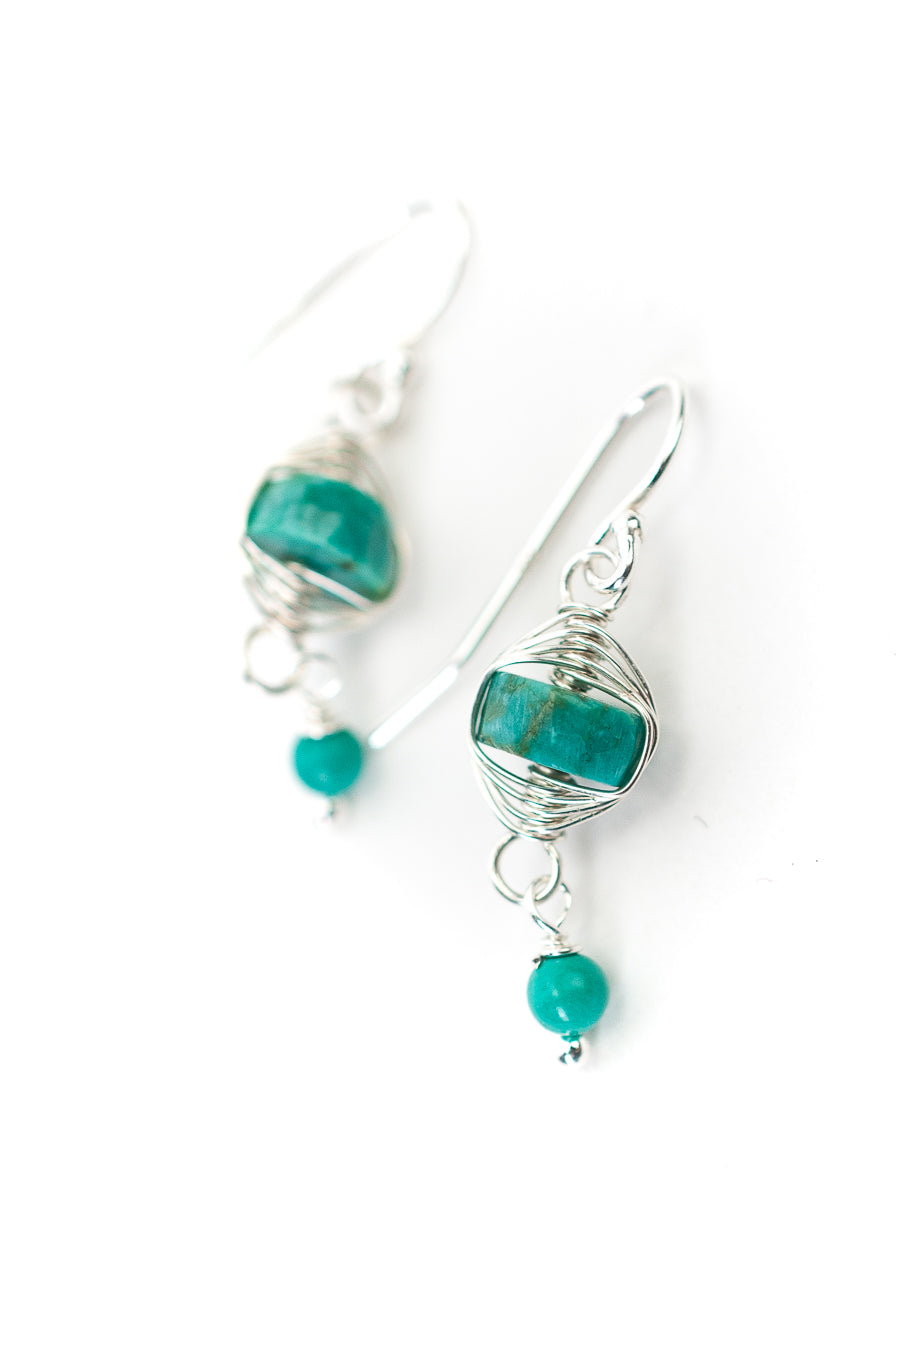 Birthstone December Silver Turquoise Herringbone Earrings